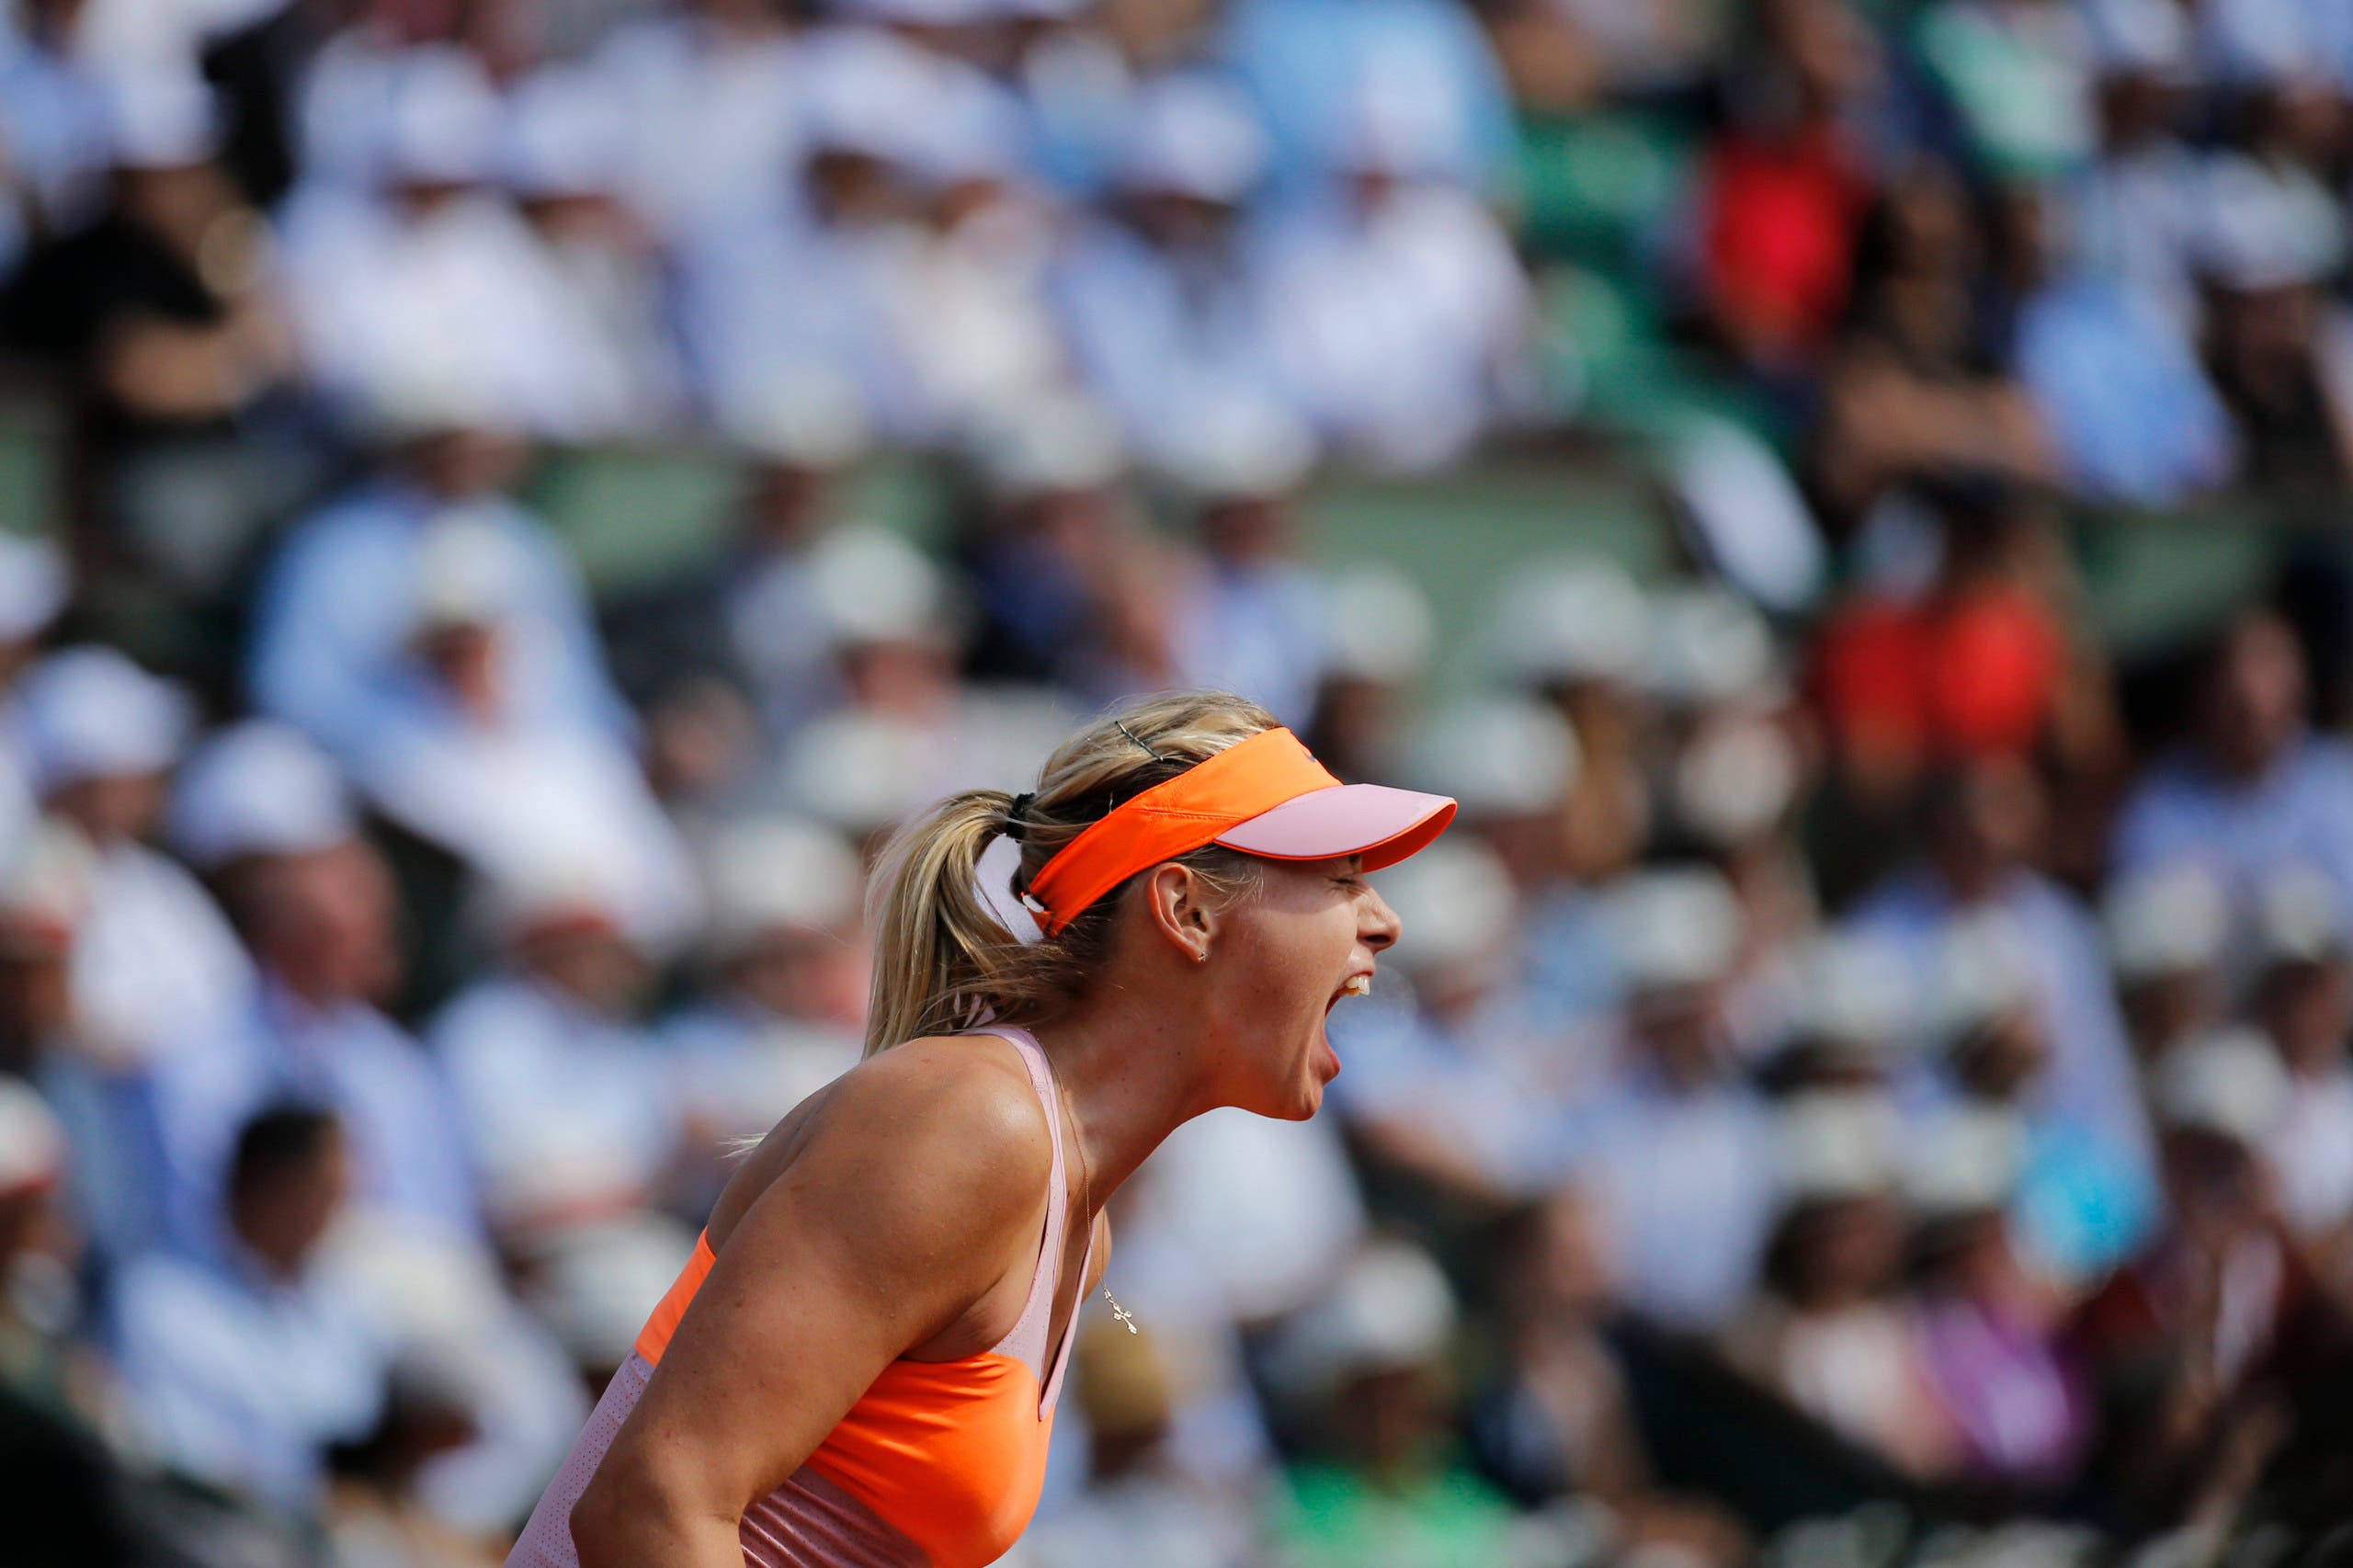 Maria Sharapova of Russia reacts during her women's semi-final match against Eugenie Bouchard of Canada at the French Open tennis tournament at the Roland Garros stadium in Paris June 5, 2014. REUTERS